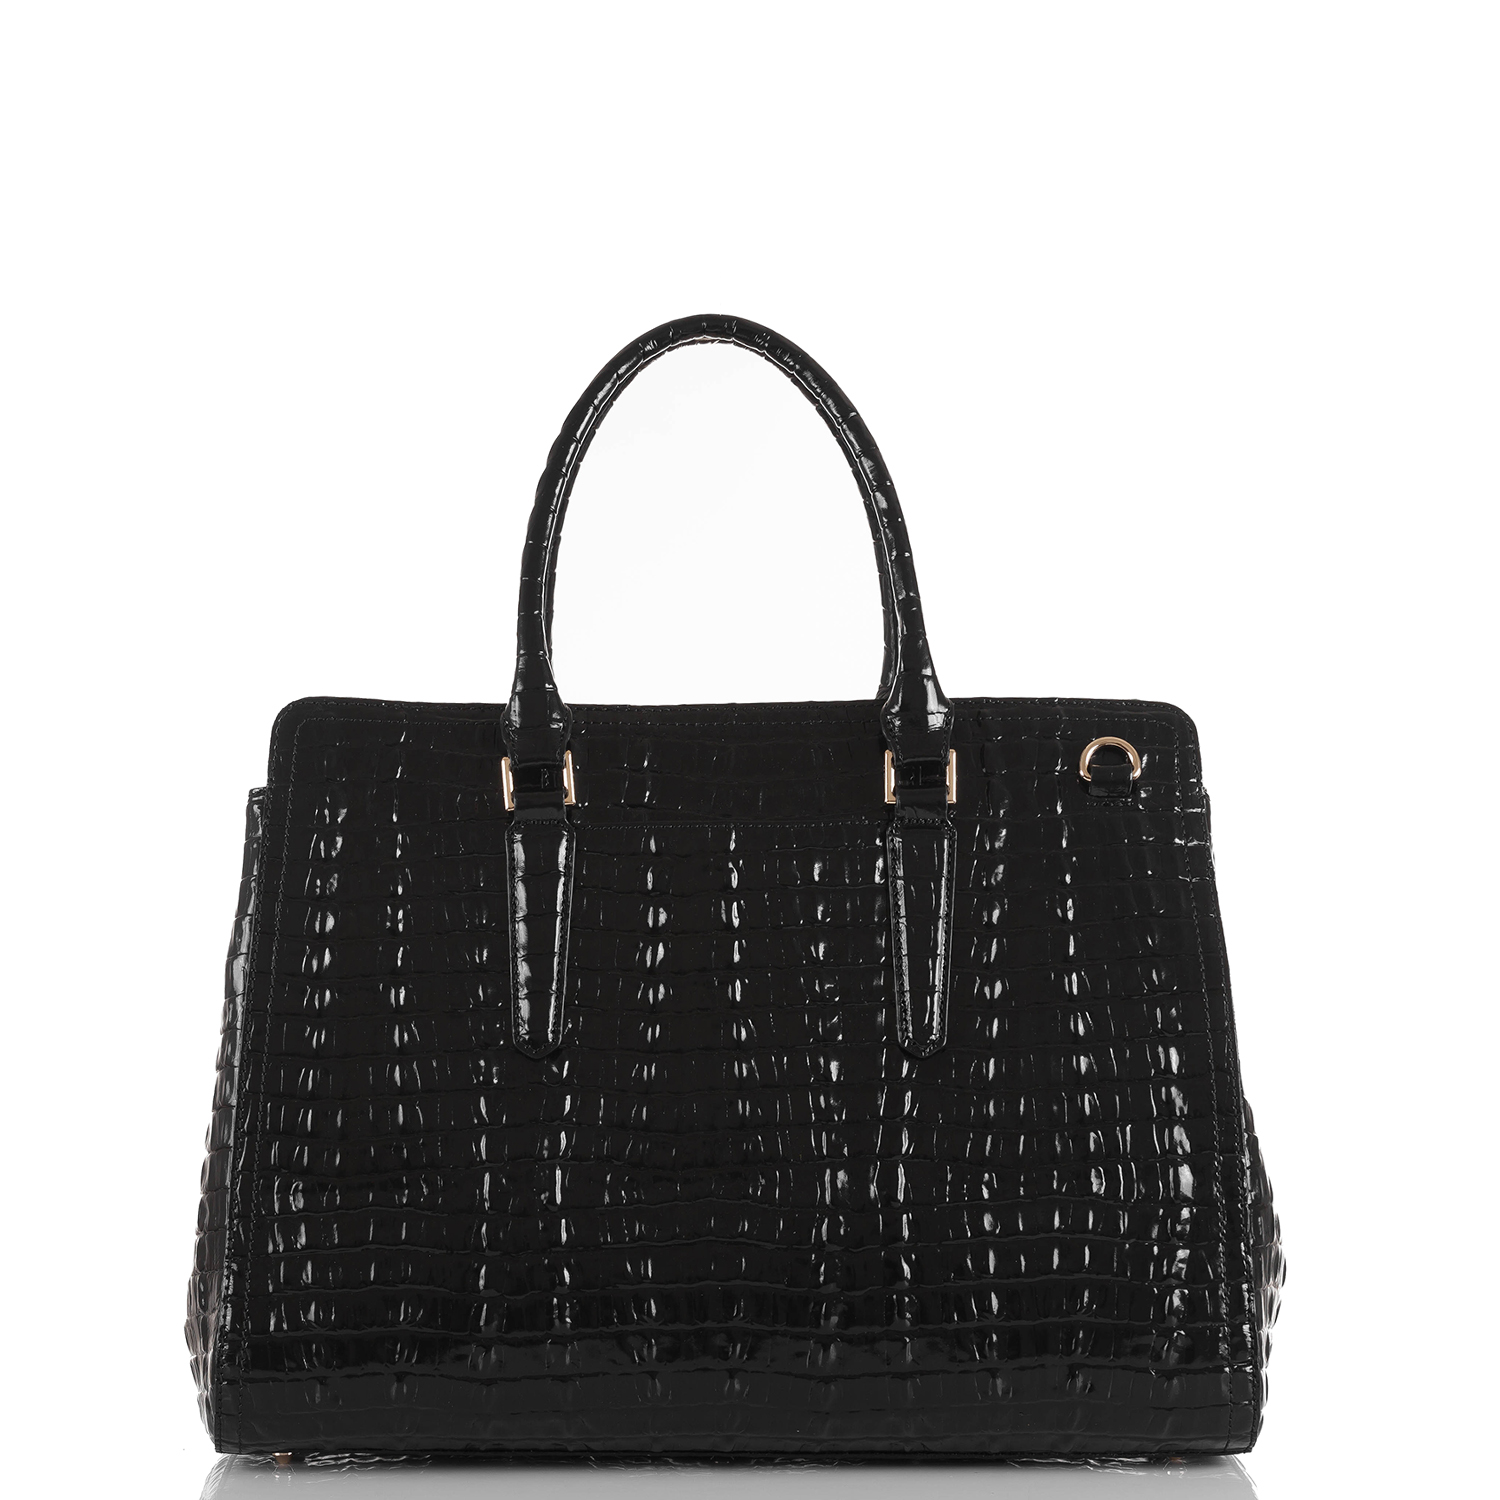 Finley Carryall Black La Scala